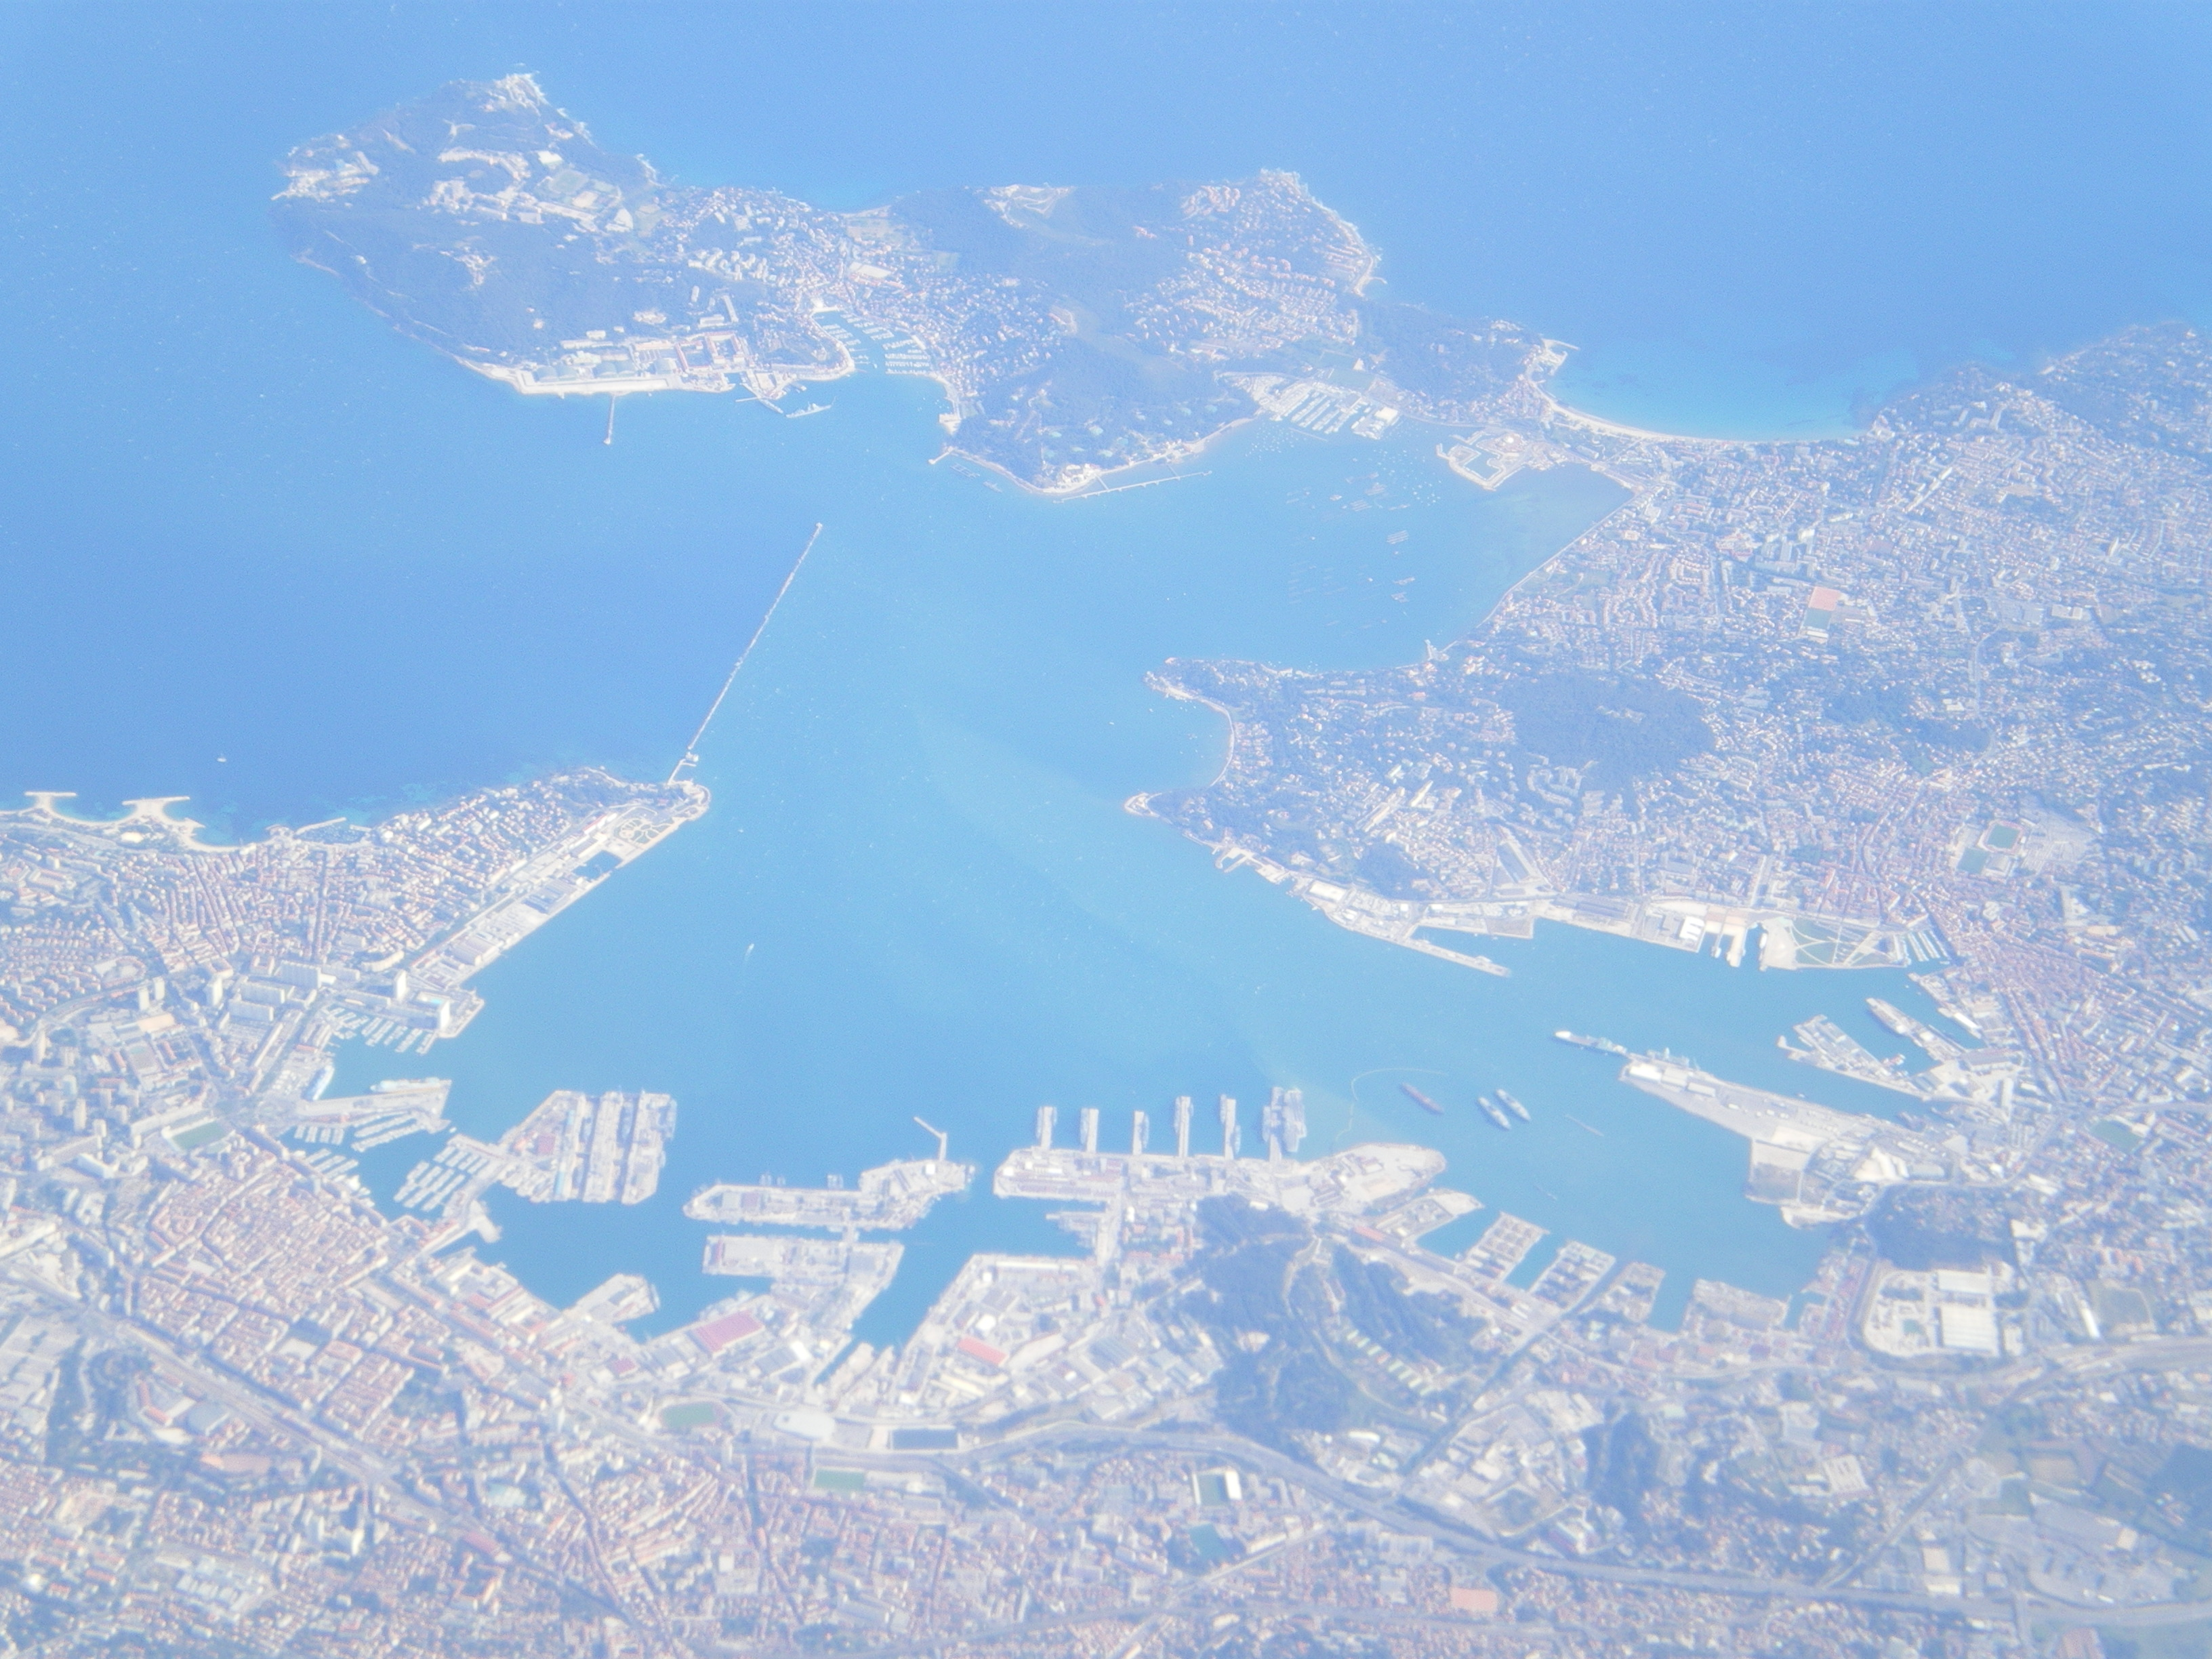 City and Port of Toulon, France